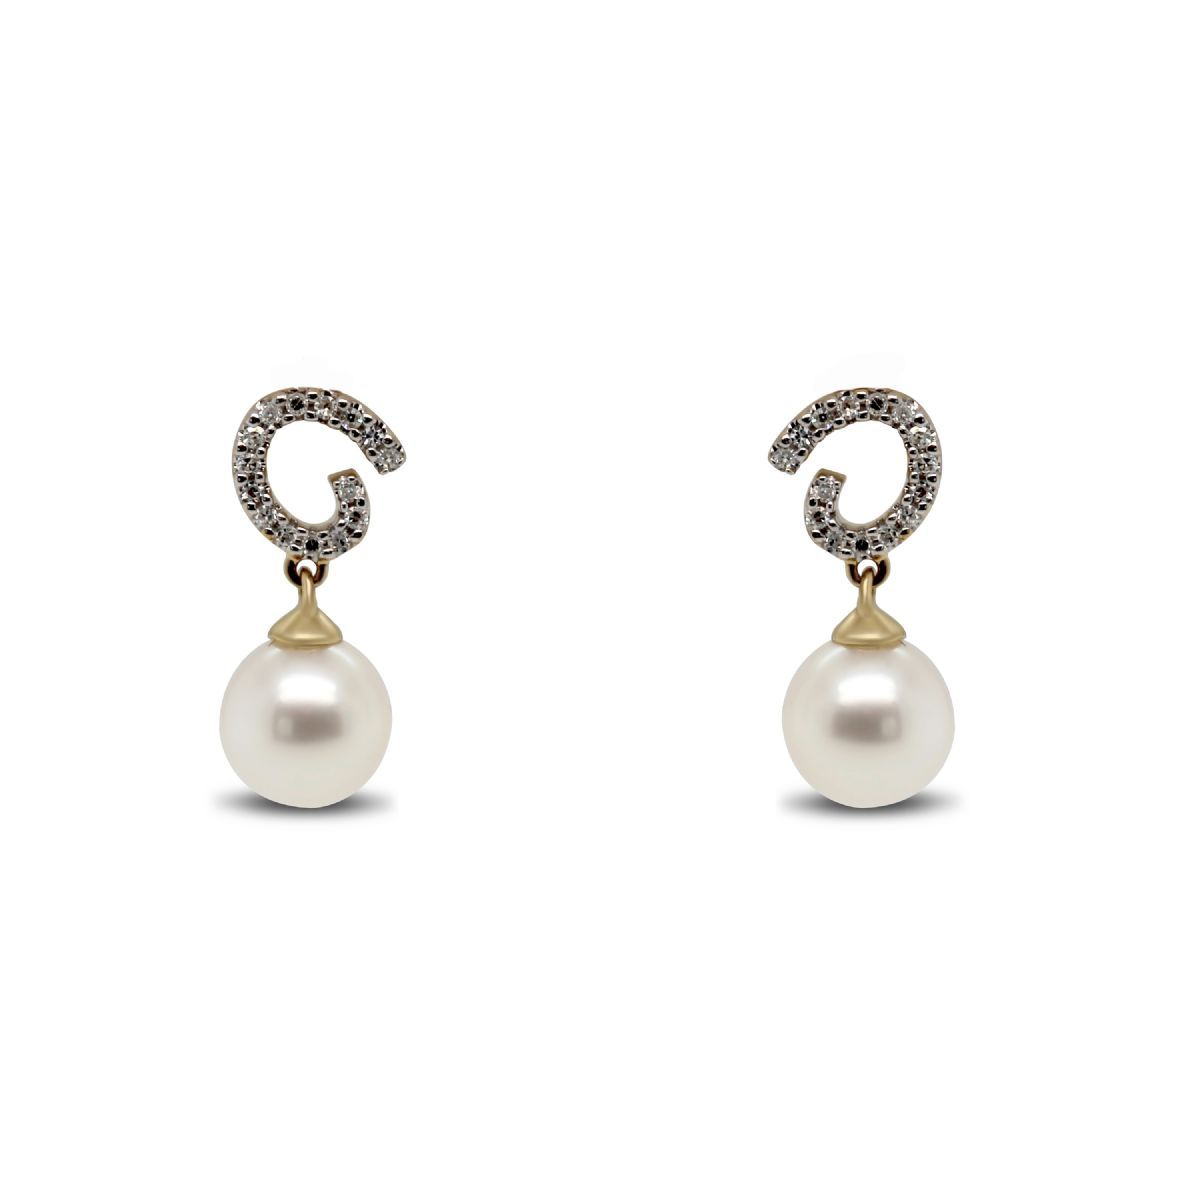 9k gold diamond and pearl drop earrings - Earrings